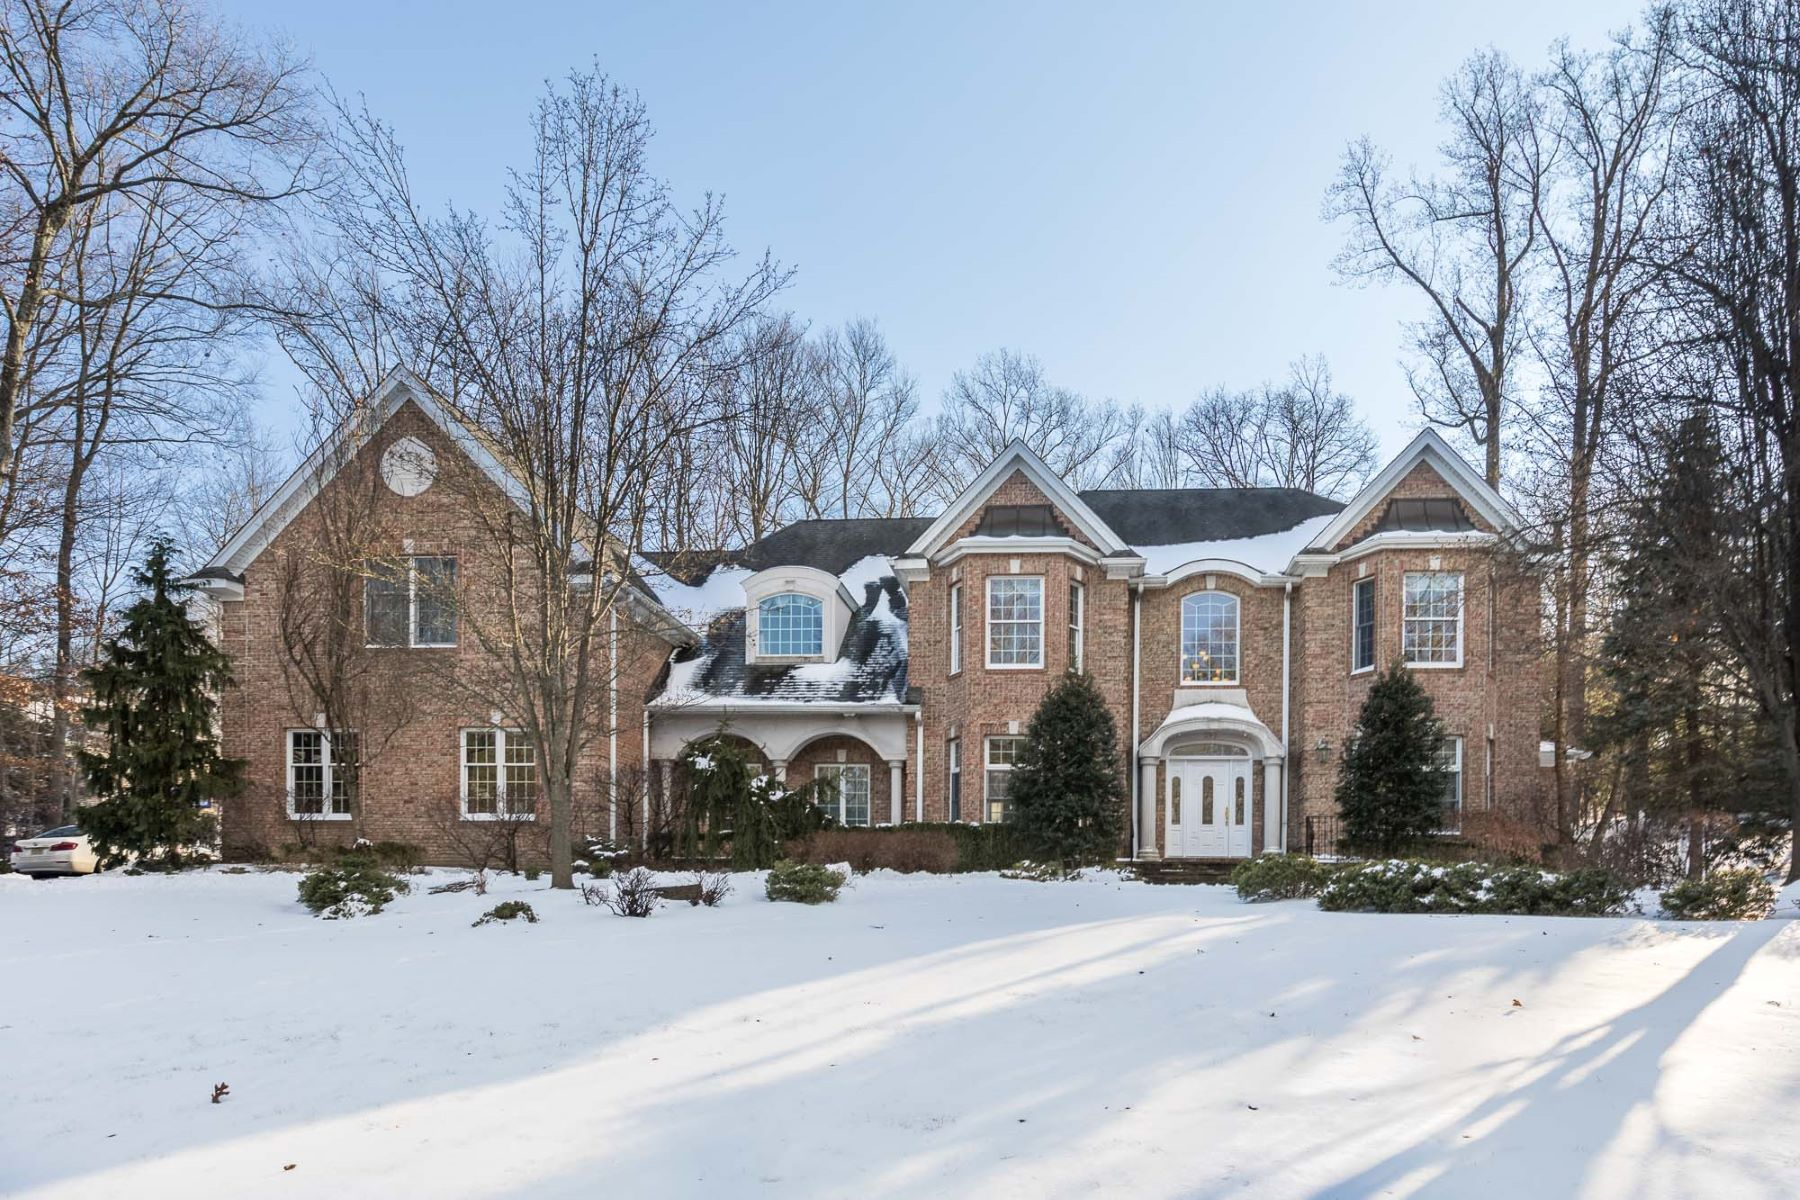 Single Family Home for Sale at Beautiful Colonial 292 Haven Road, Franklin Lakes, New Jersey, 07417 United States